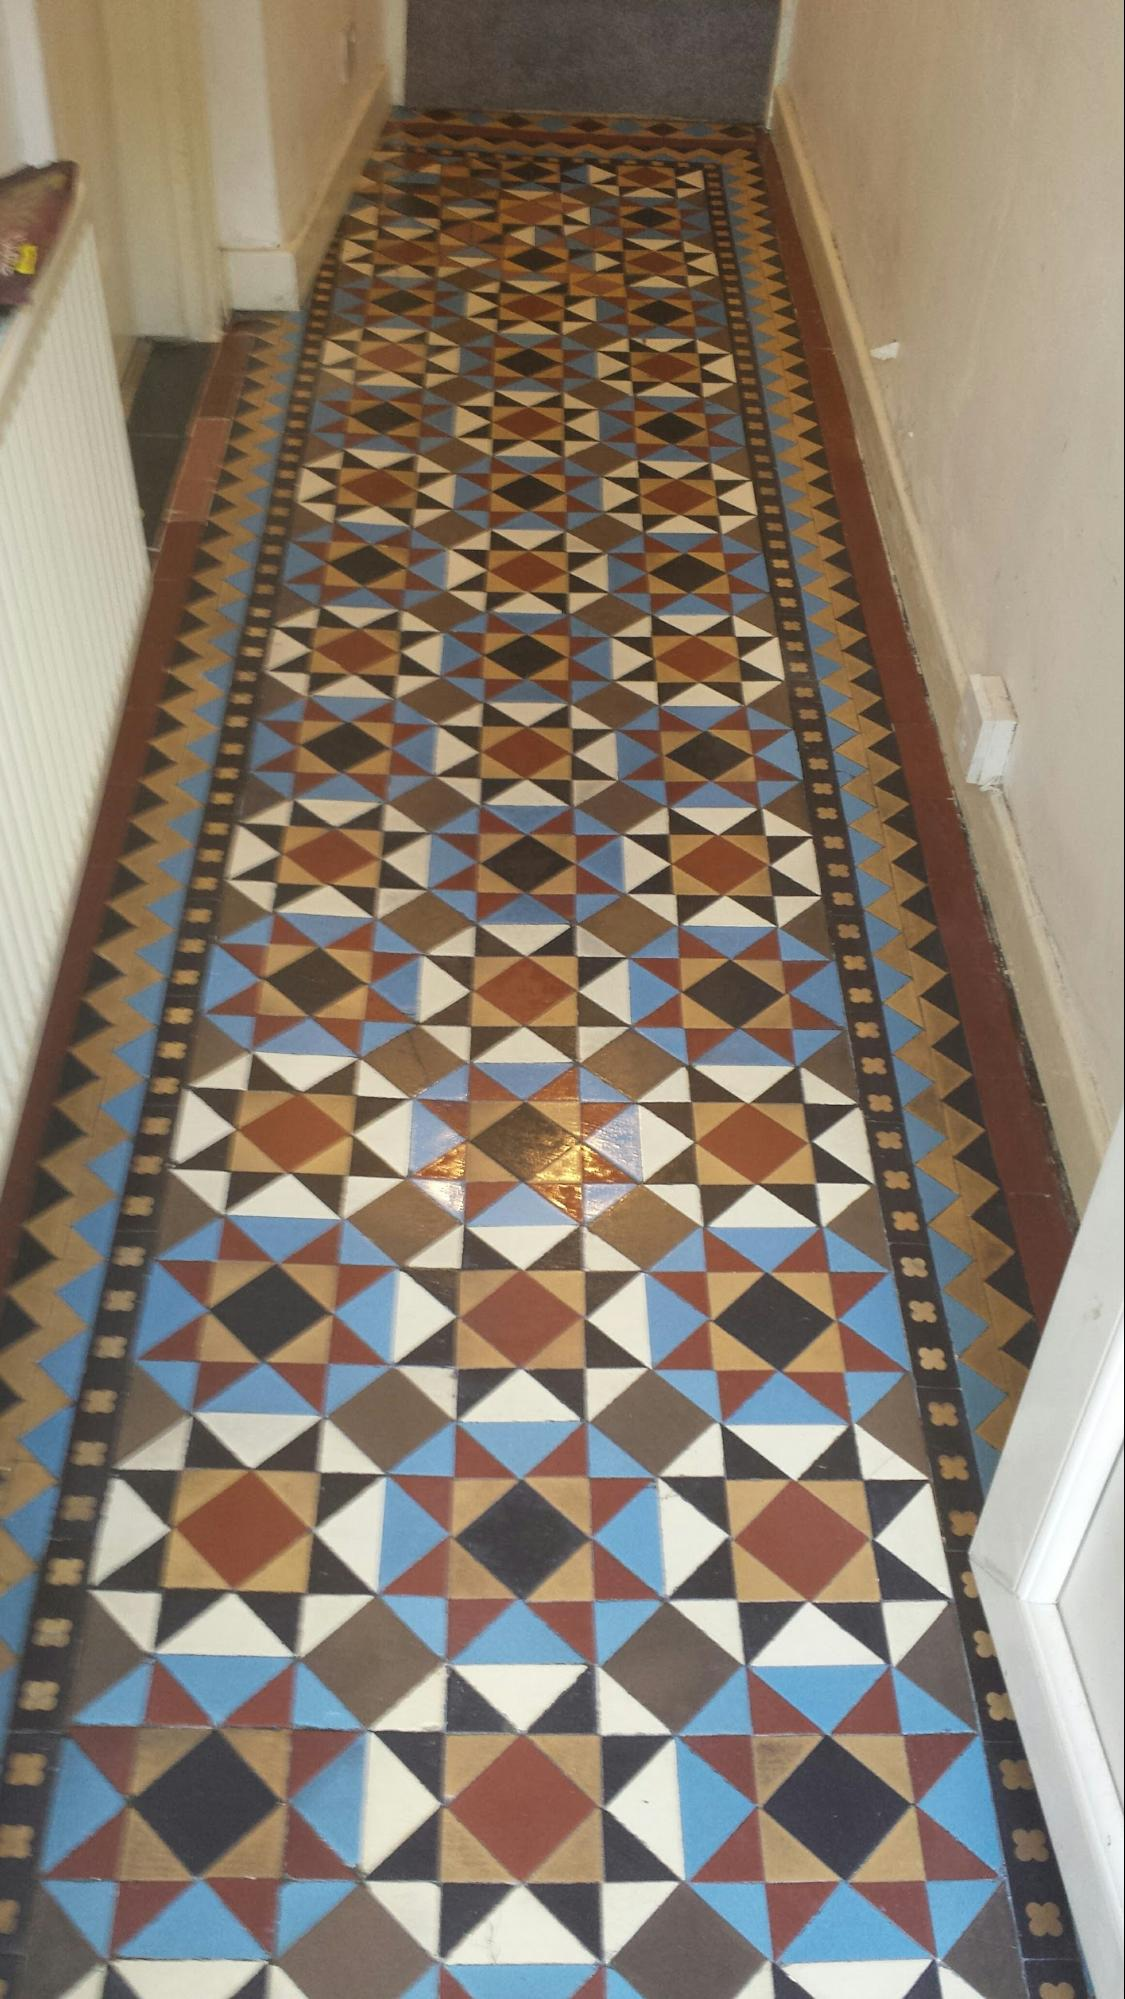 Victorian Tiles After Restorative Cleaning Stockton Heath